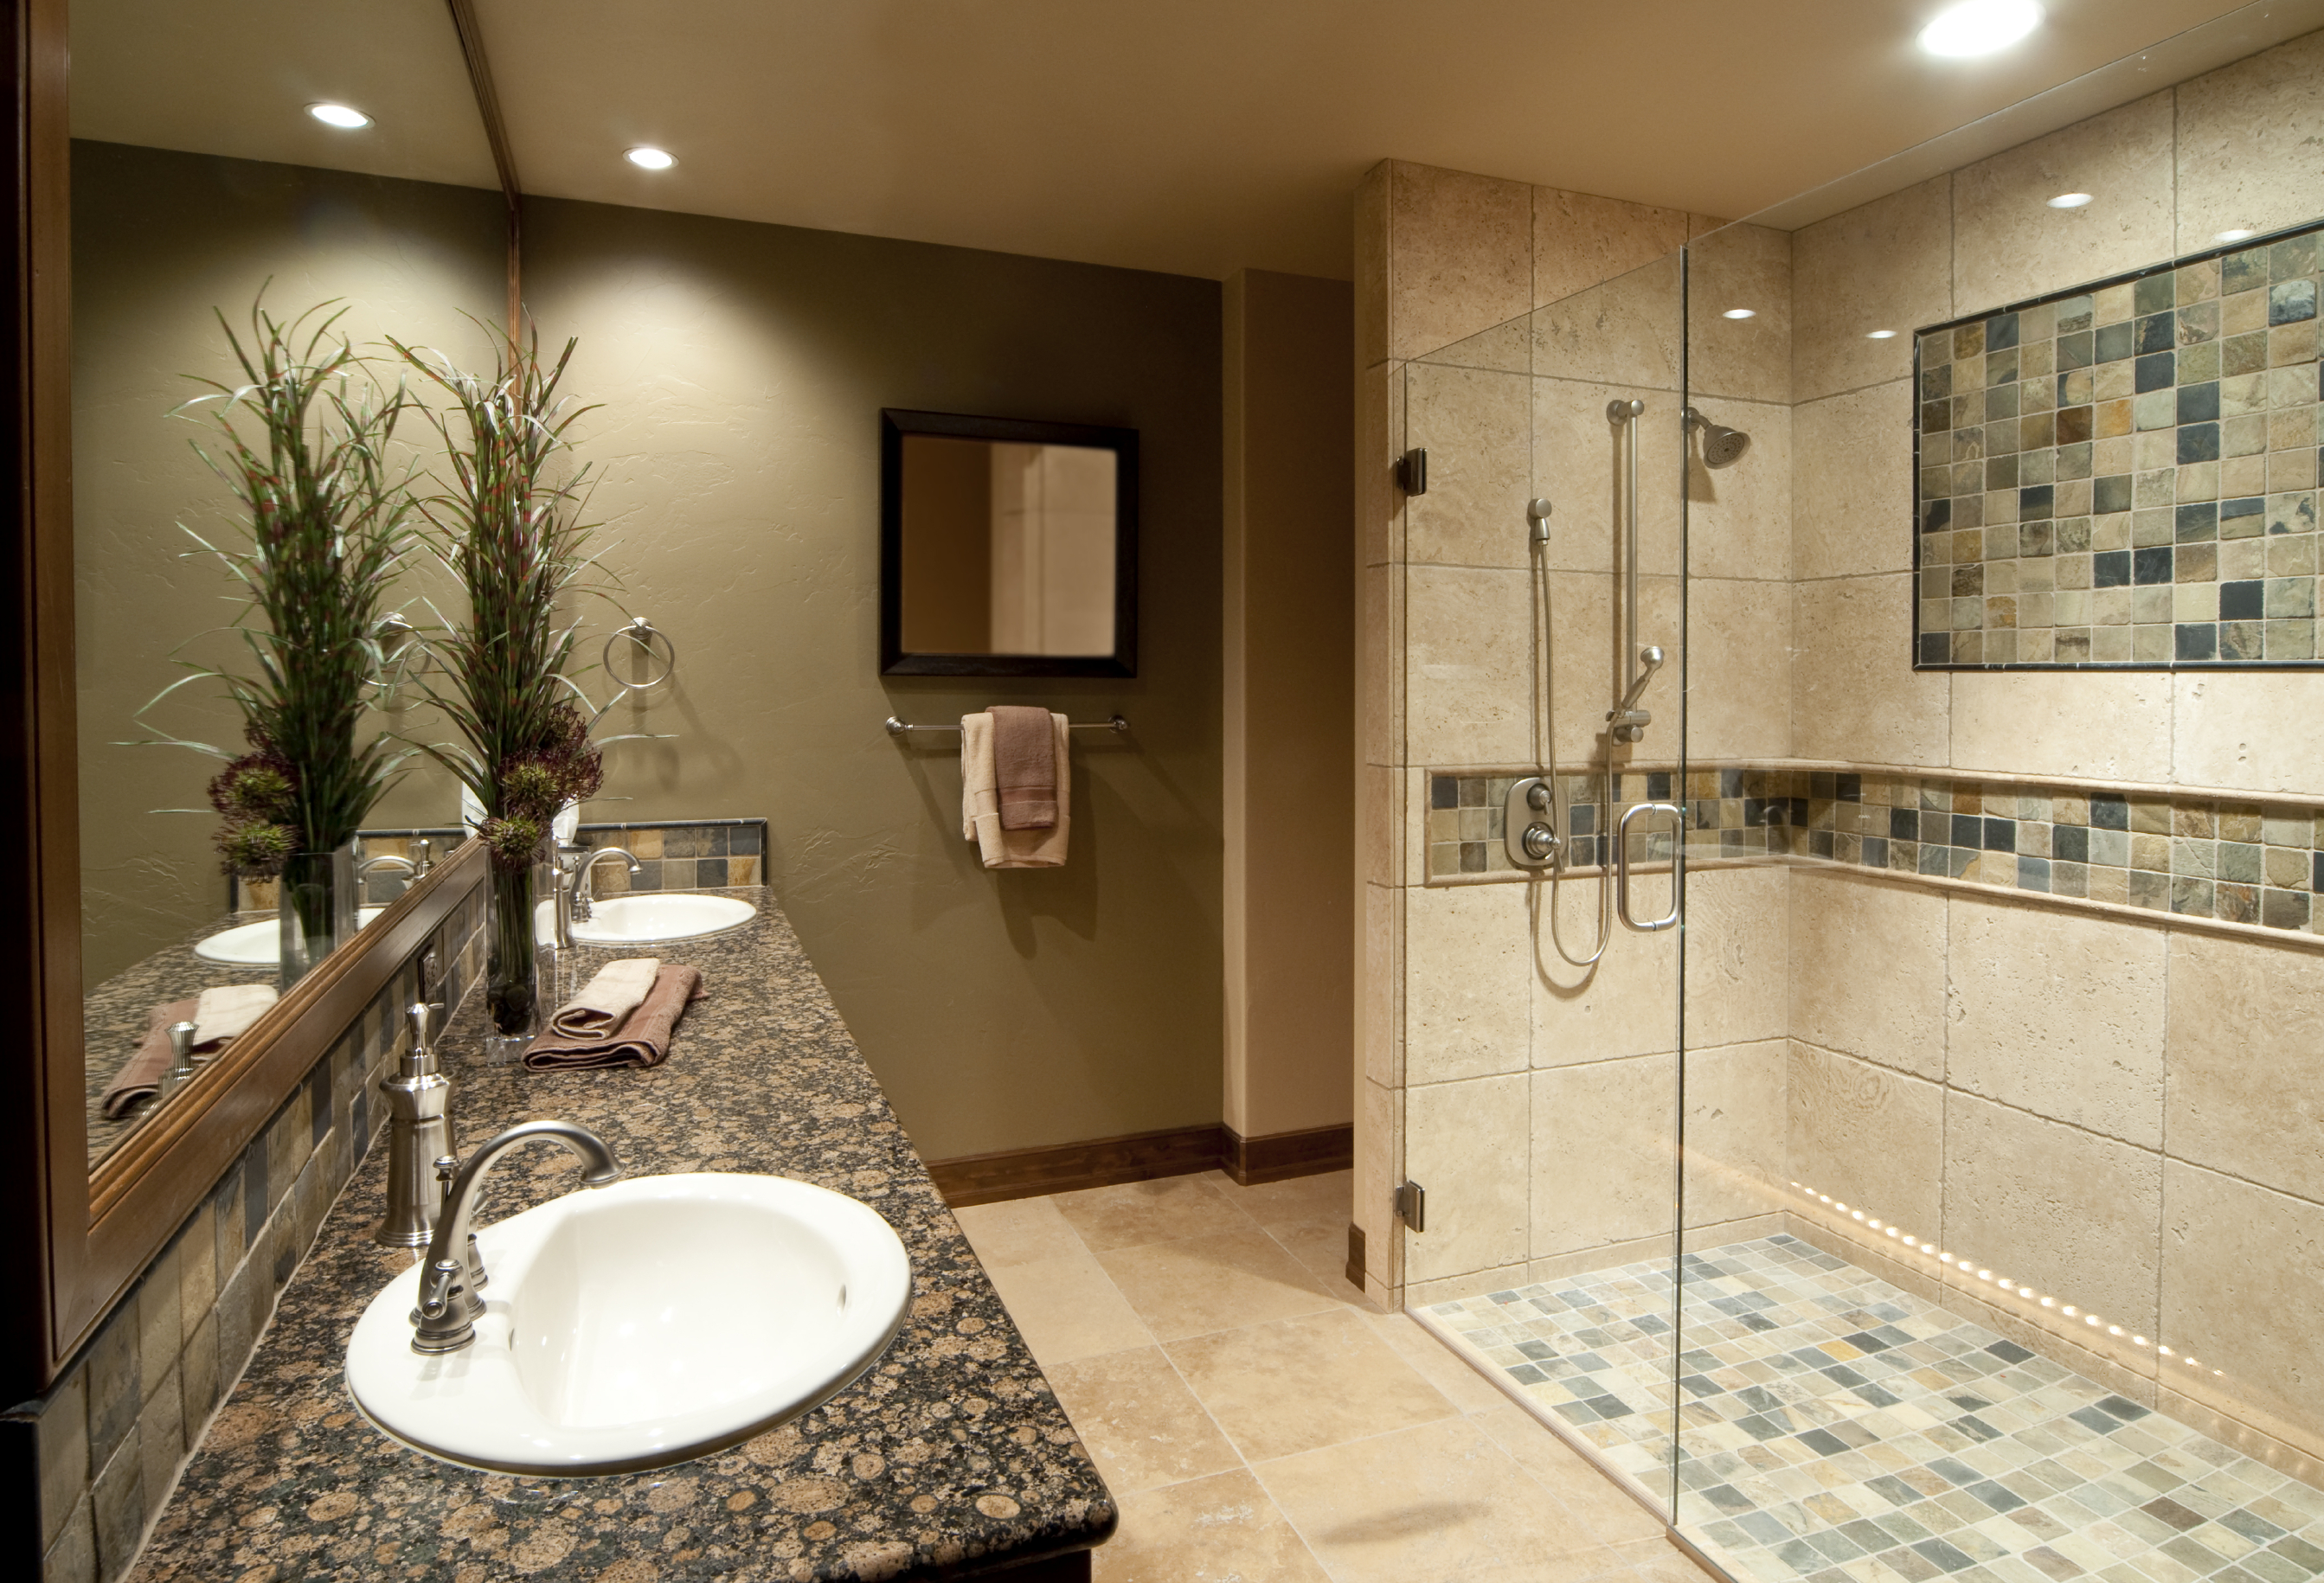 Charmant Bathrooms Remodel. Bathroom Remodeling Nj Bathrooms Remodel